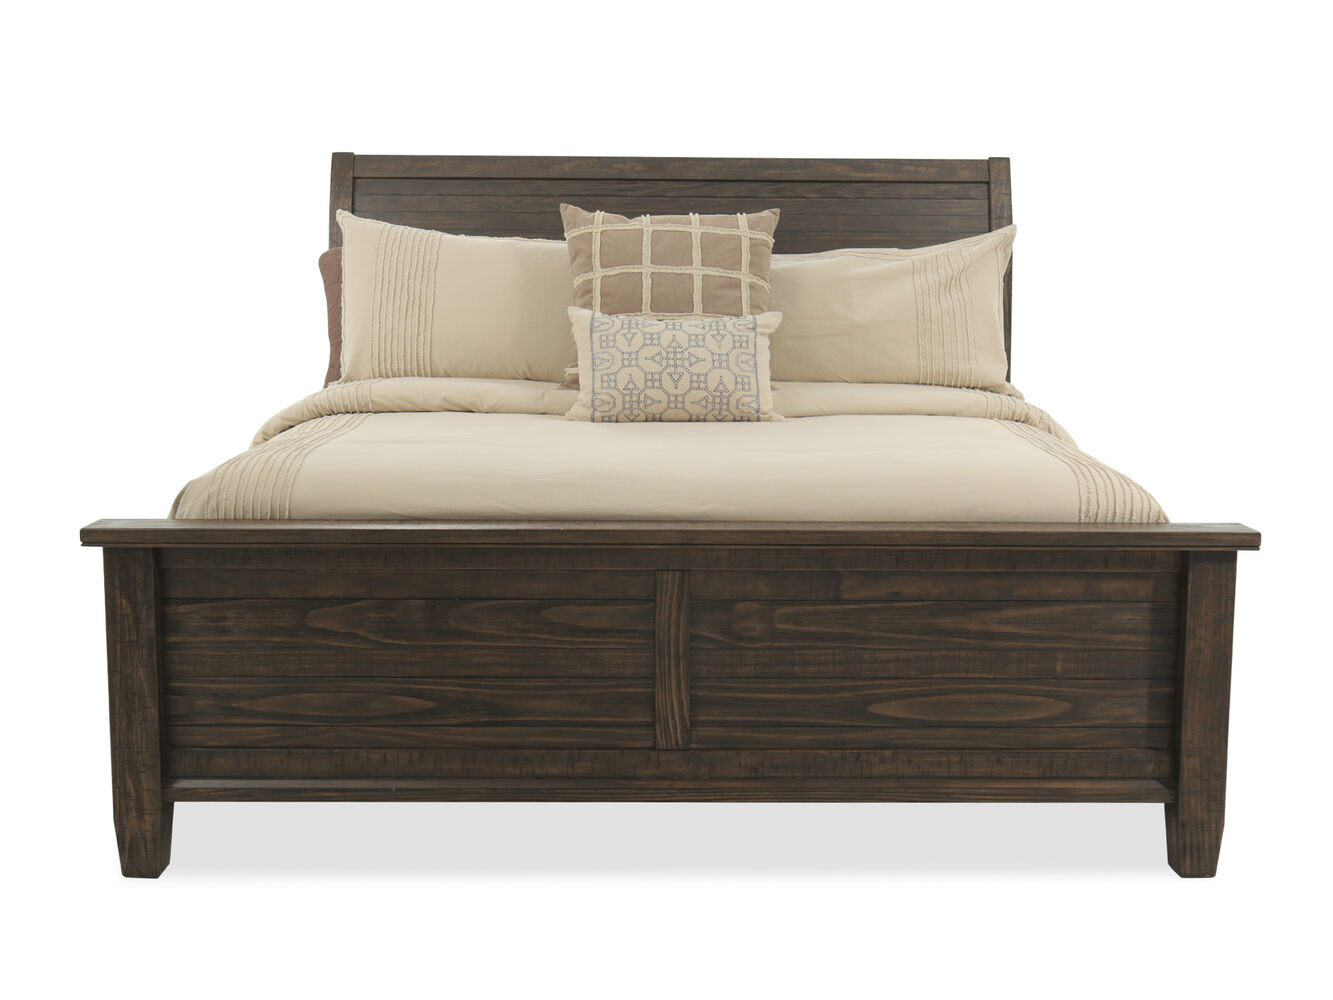 Mathis Brothers Bedroom Furniture Bedroom Furniture Stores Mathis Brothers